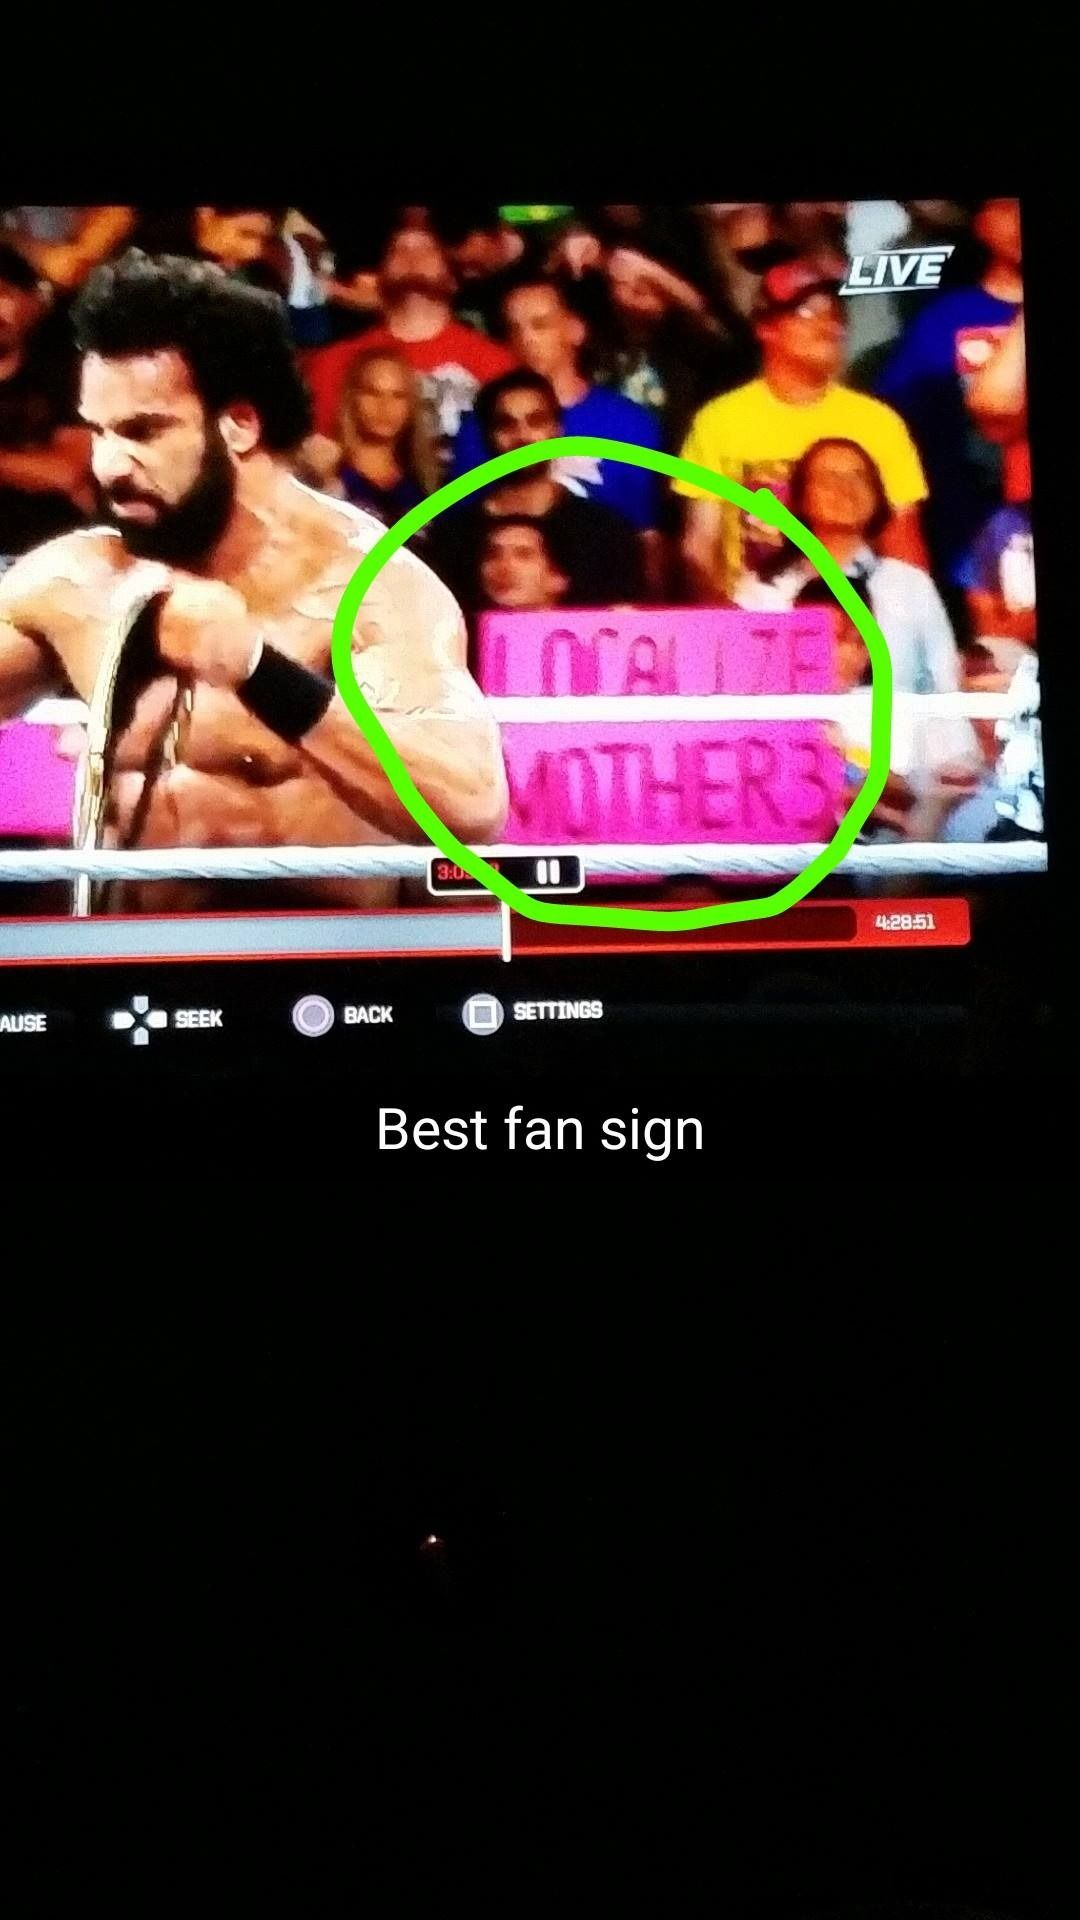 Mother 3 on WWE via /r/gaming | Tumblr | Games, Videogames, Pc gamer